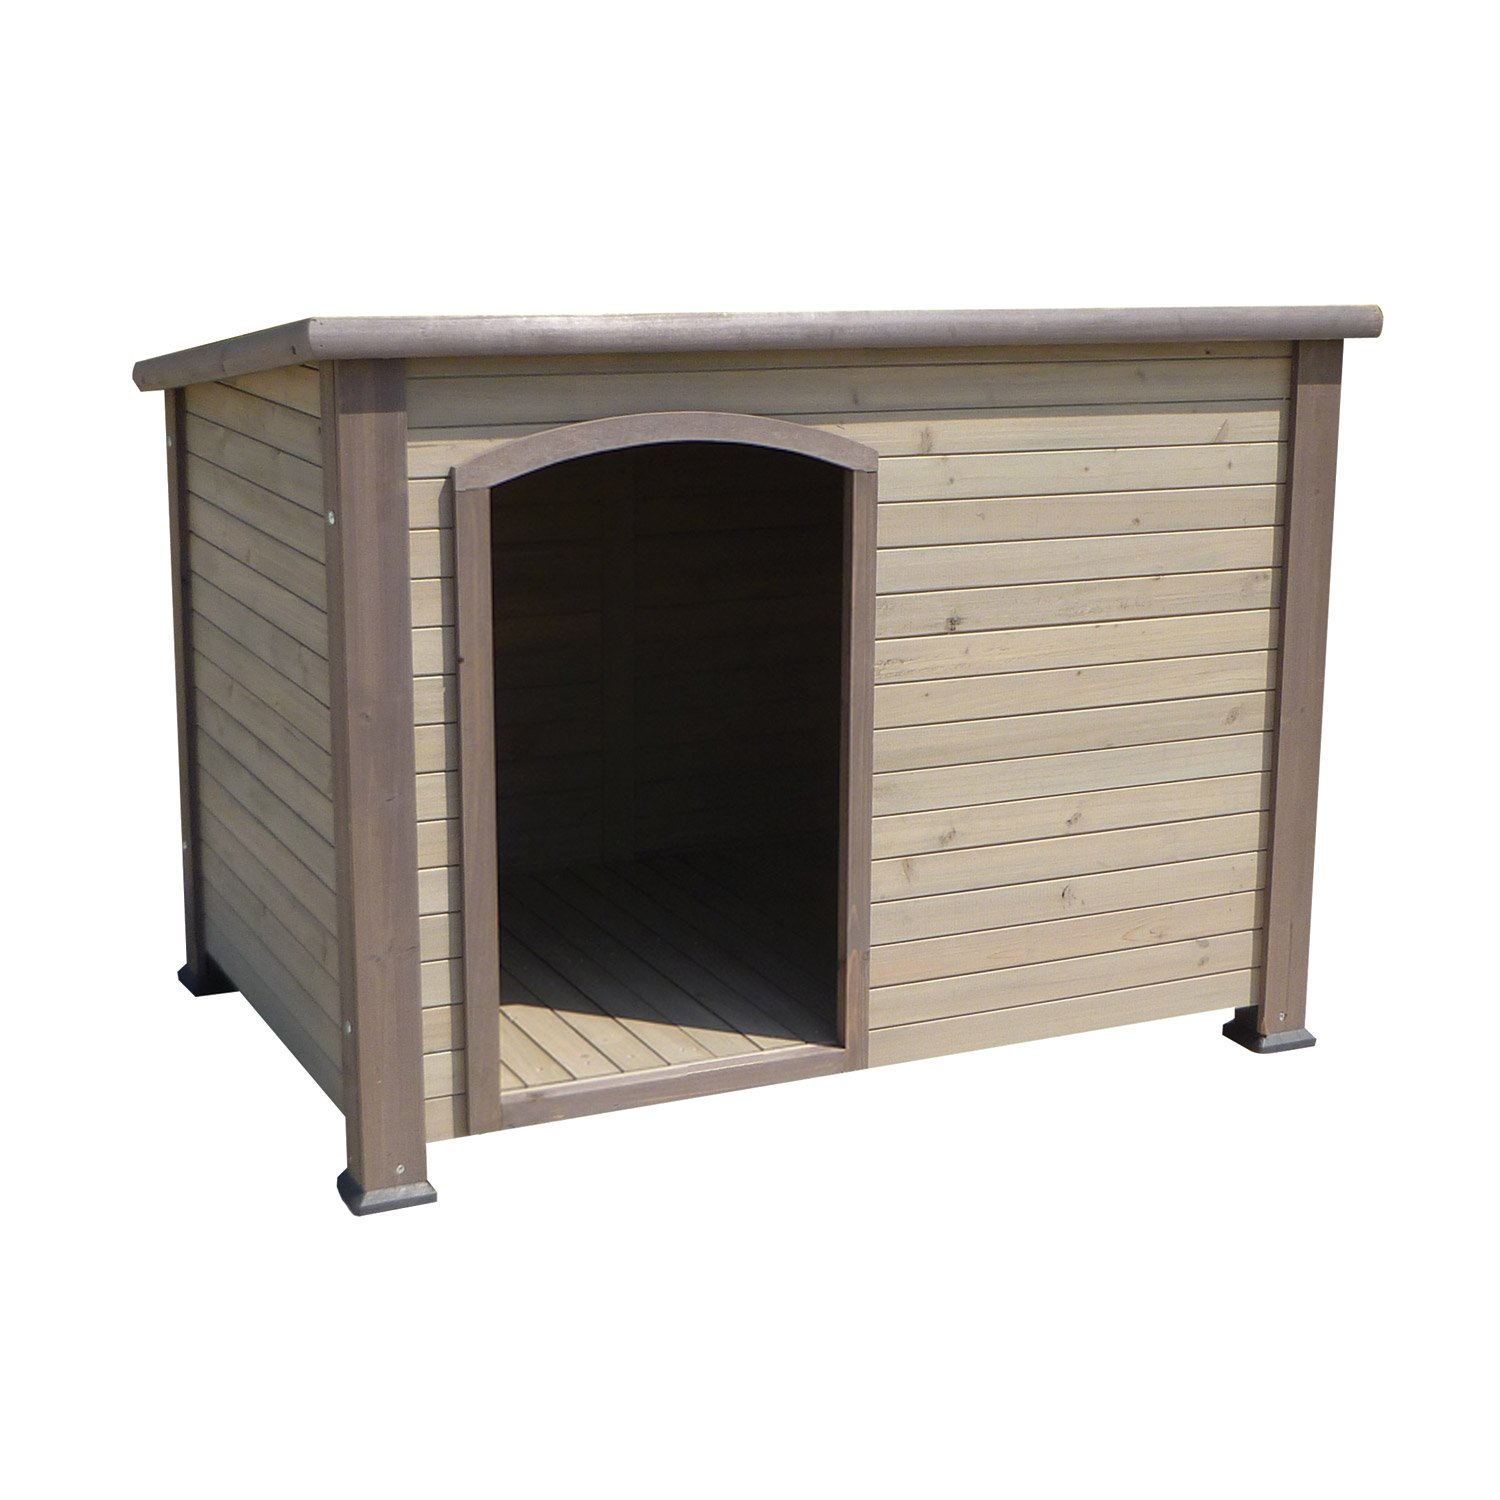 Find great deals on eBay for free dog houses. Shop with confidence.